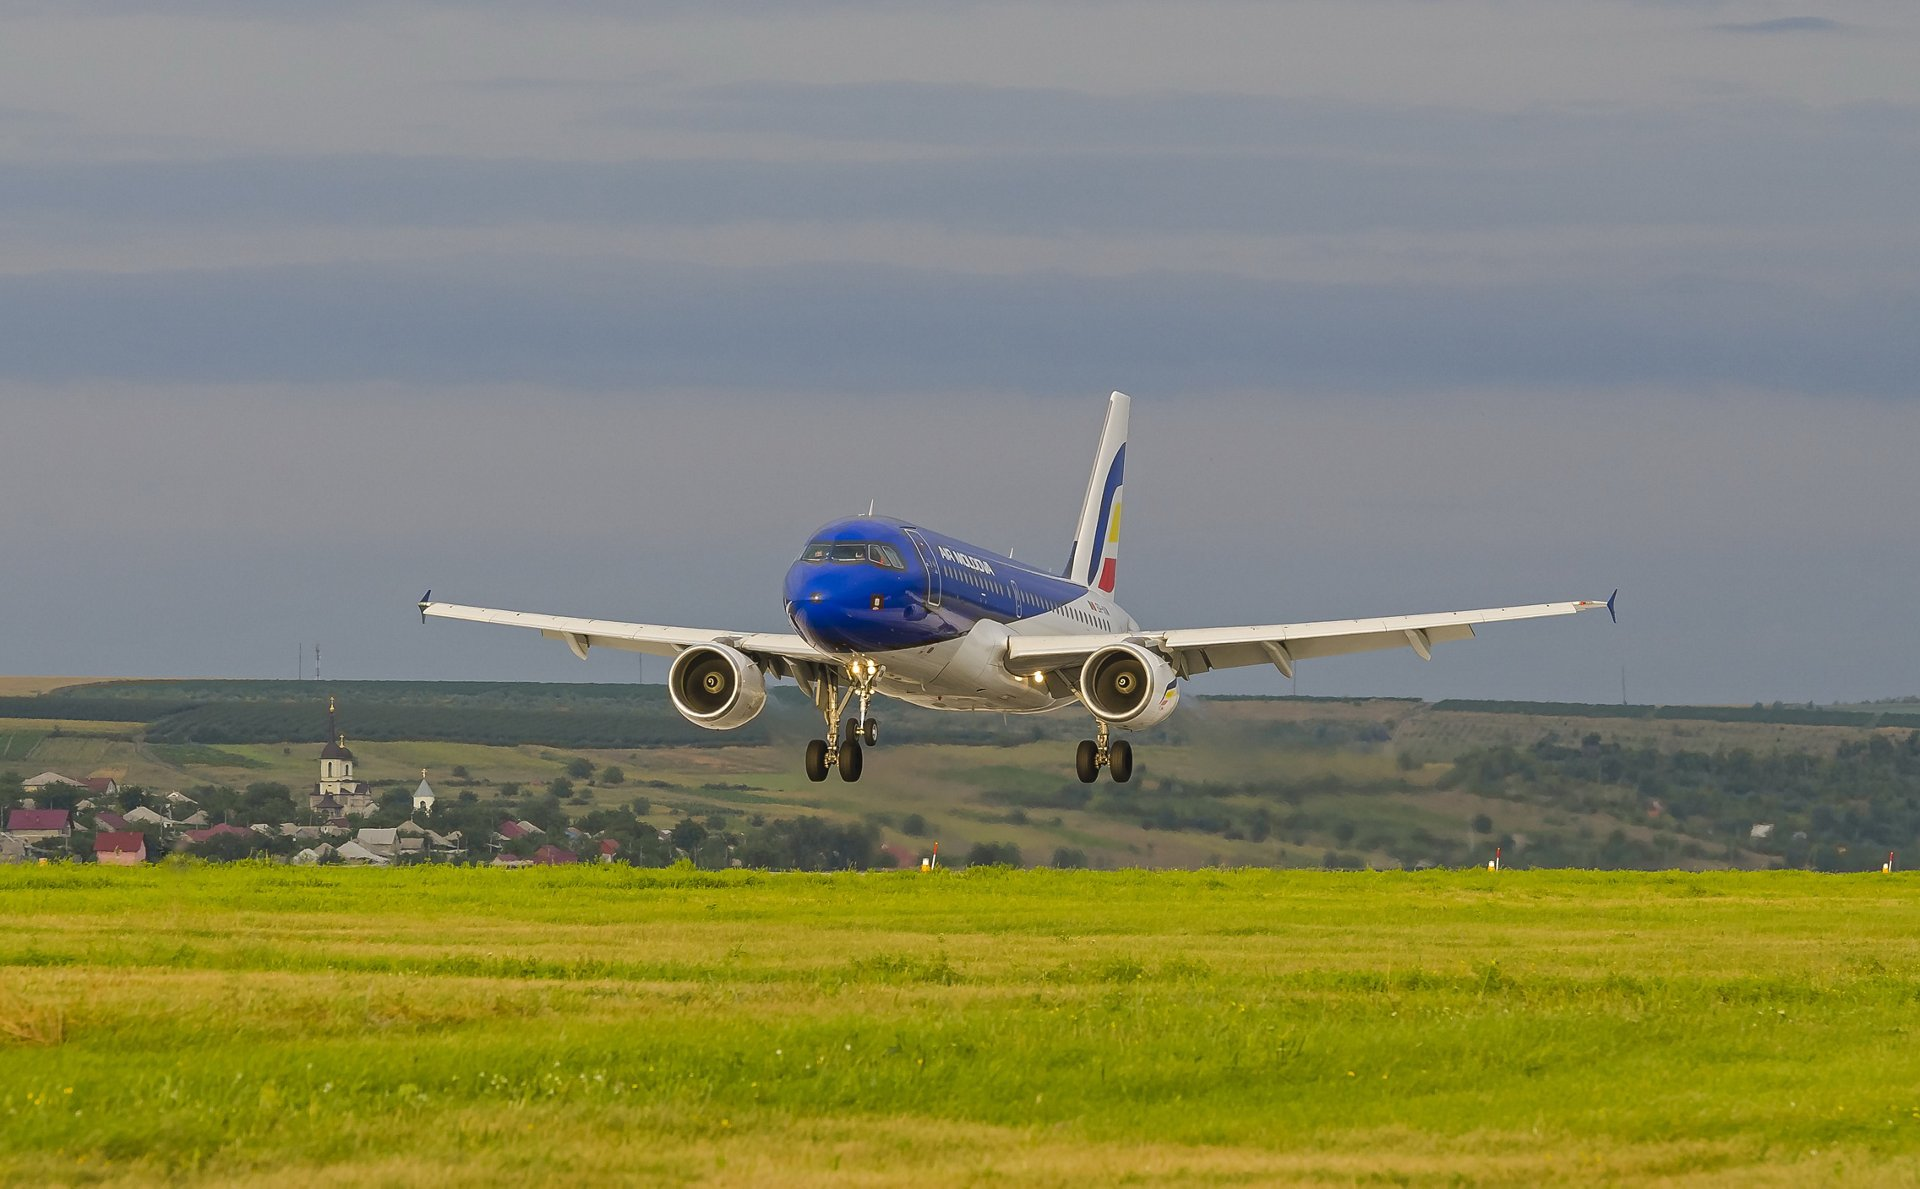 Air Moldova, the national airline of Moldova, signed up for the recently launched application of the OPTIMIZE suite: the Performance Factor Optimizer (PFO).